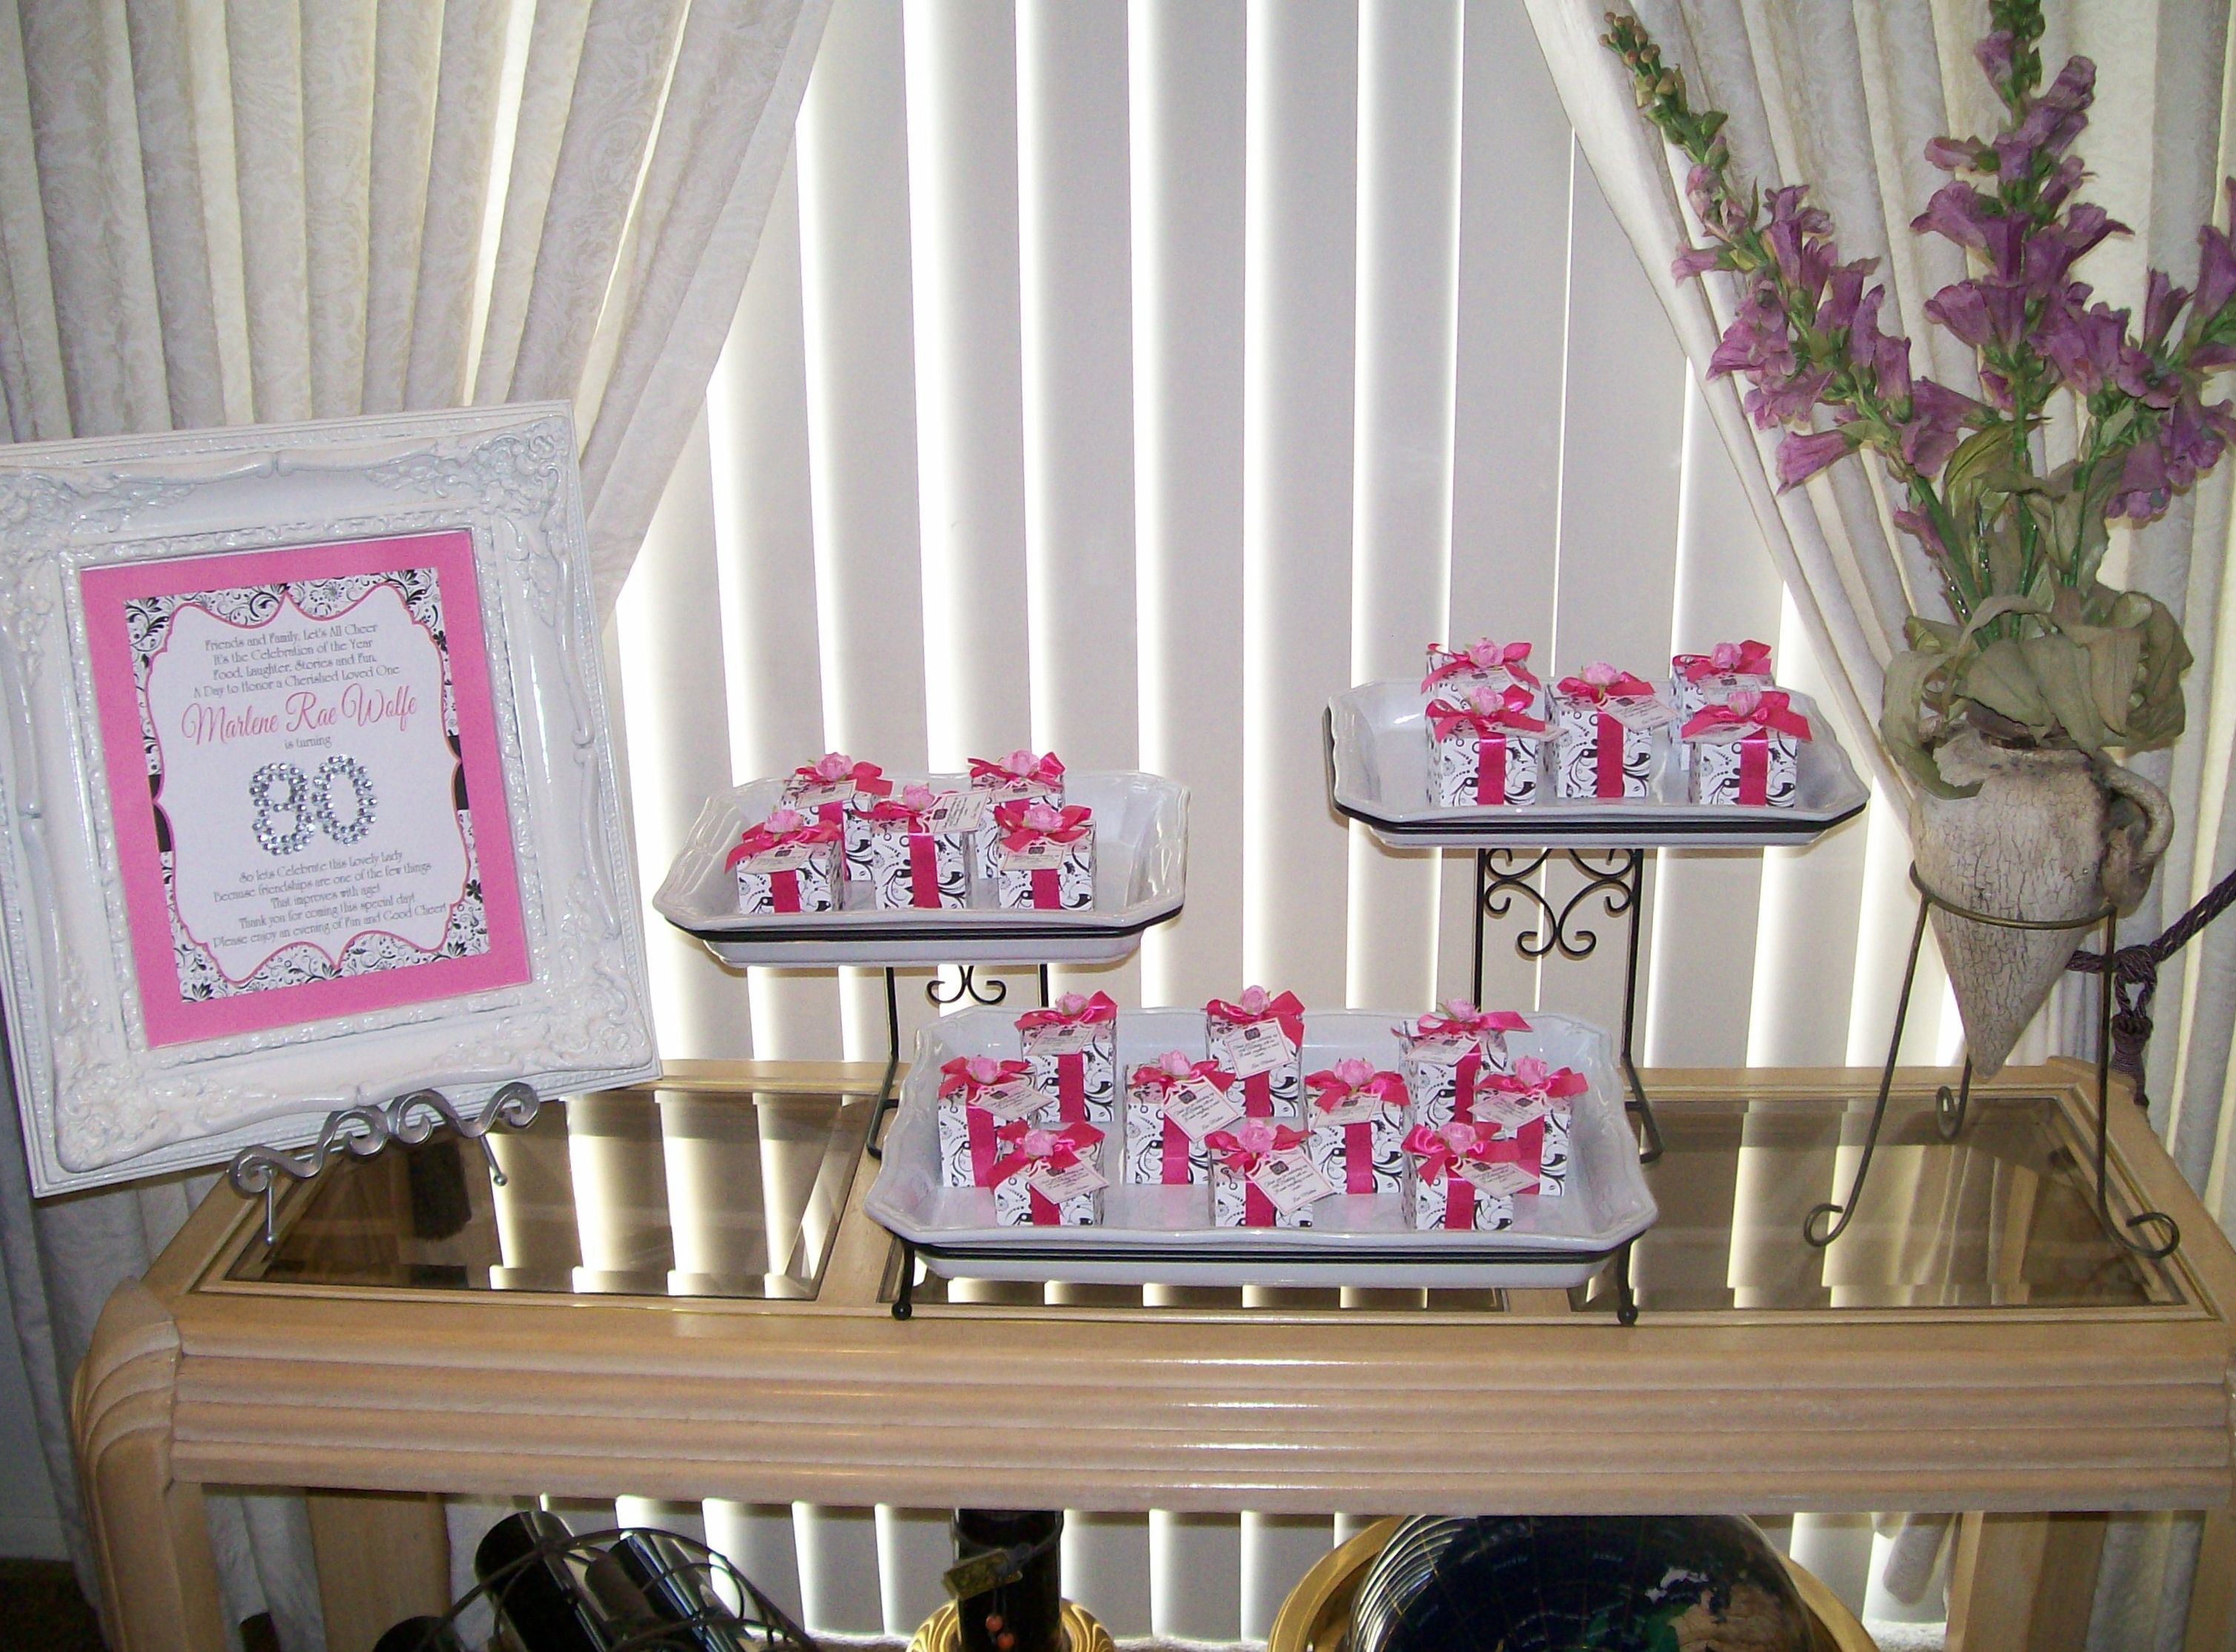 Best ideas about 80th Birthday Party Favors . Save or Pin 80th Birthday Party Favor Gift Boxes and Sign Now.